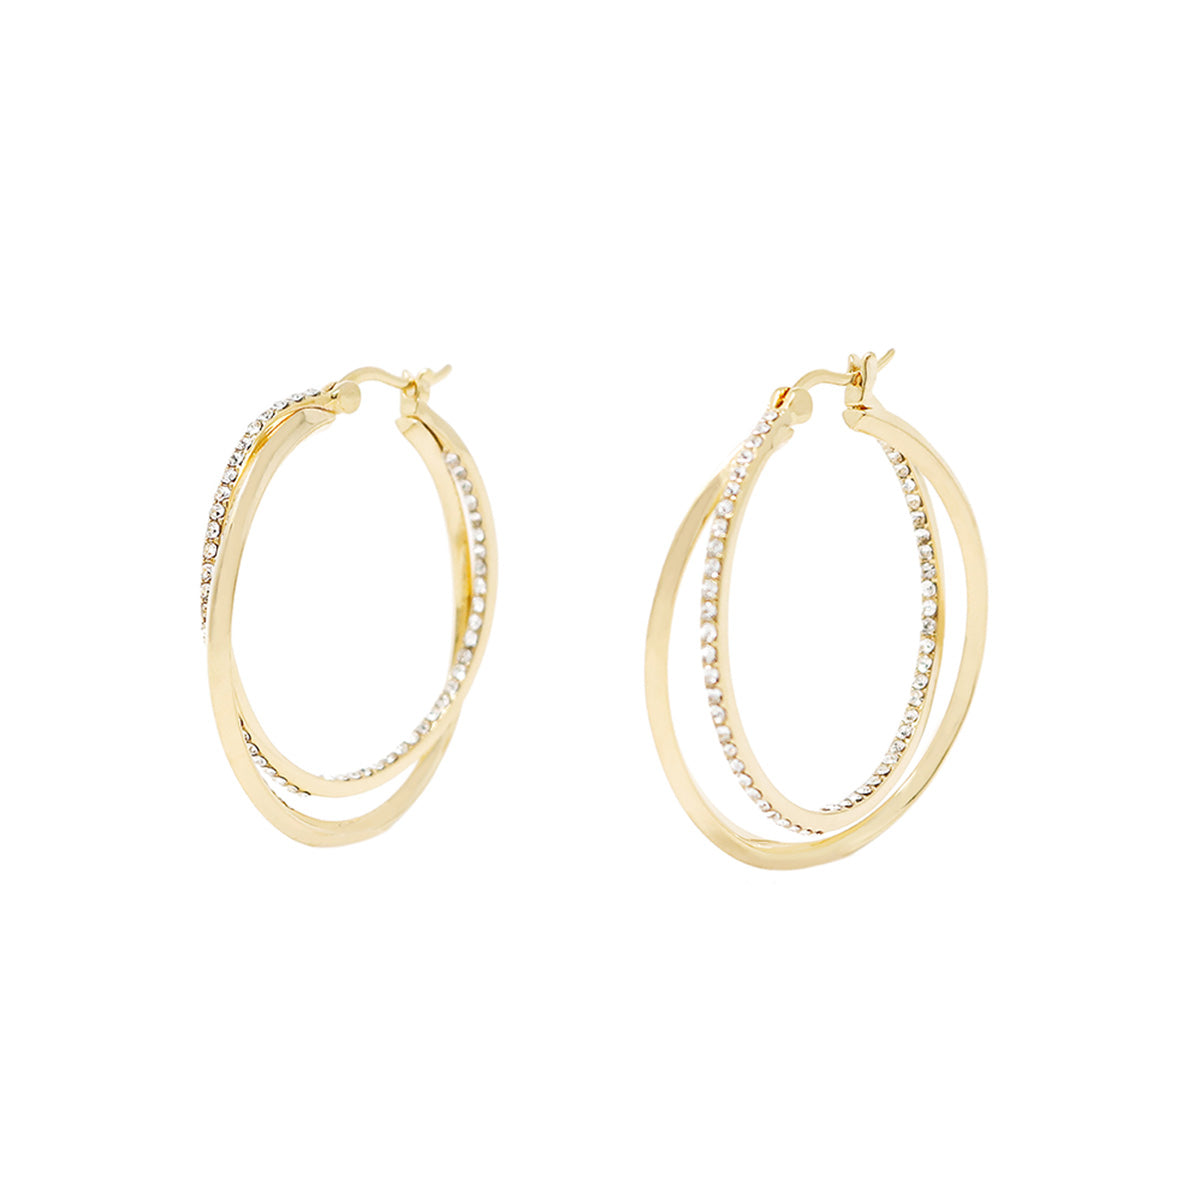 Cira Intertwined Pavé Hoop Earrings - Gold